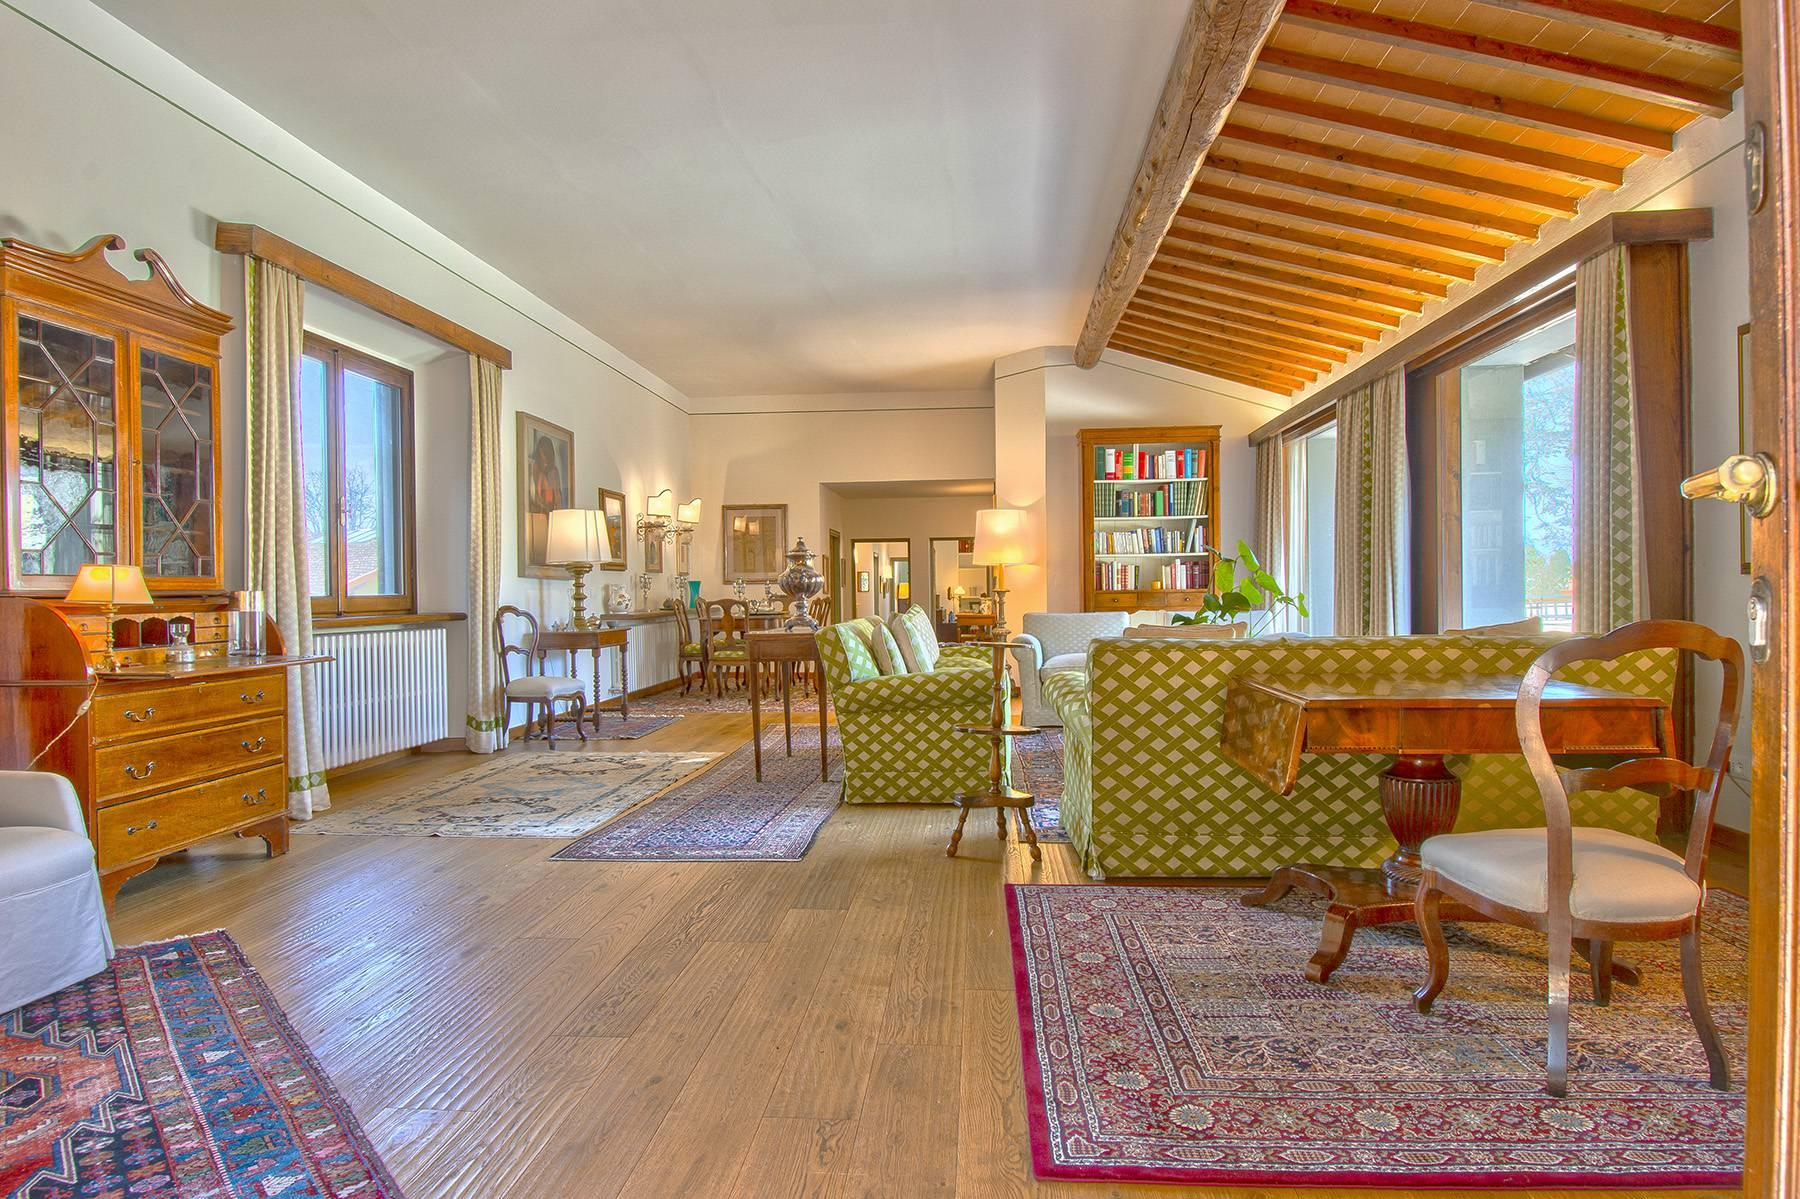 Beautiful renovated apartment with terrace close to Boboli Gardens and Poggio Imperiale - 9